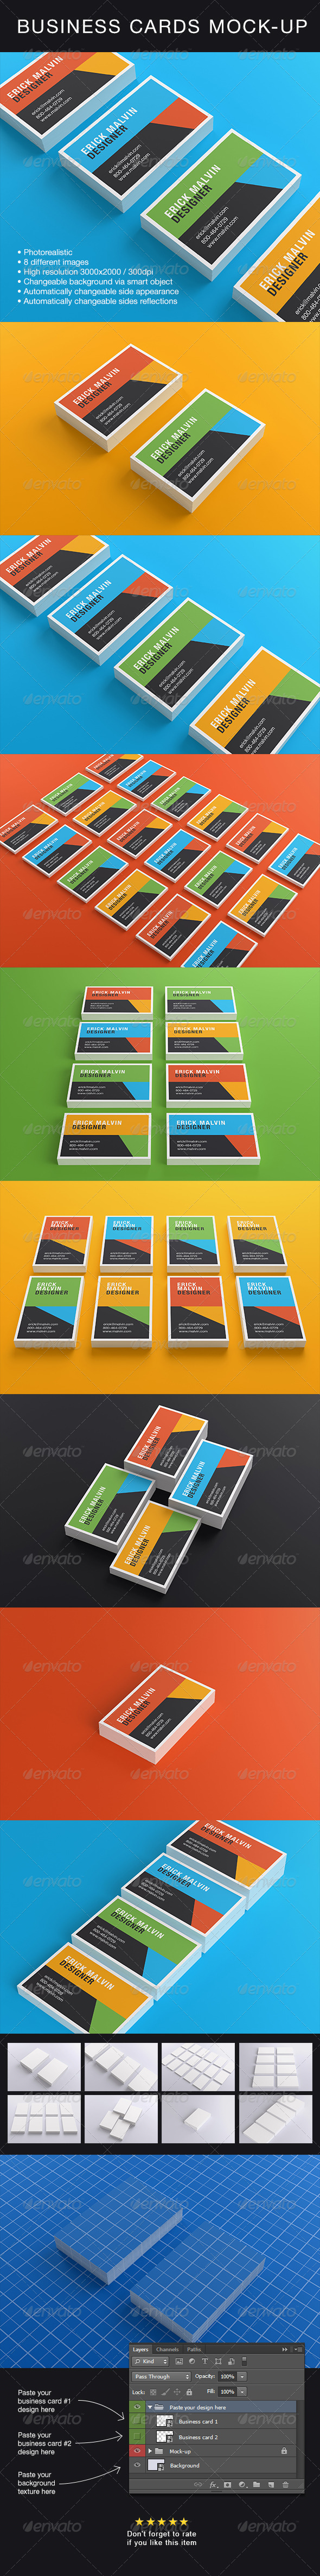 Business Cards Mock-up [8.5×5.5 cm] - Business Cards Print